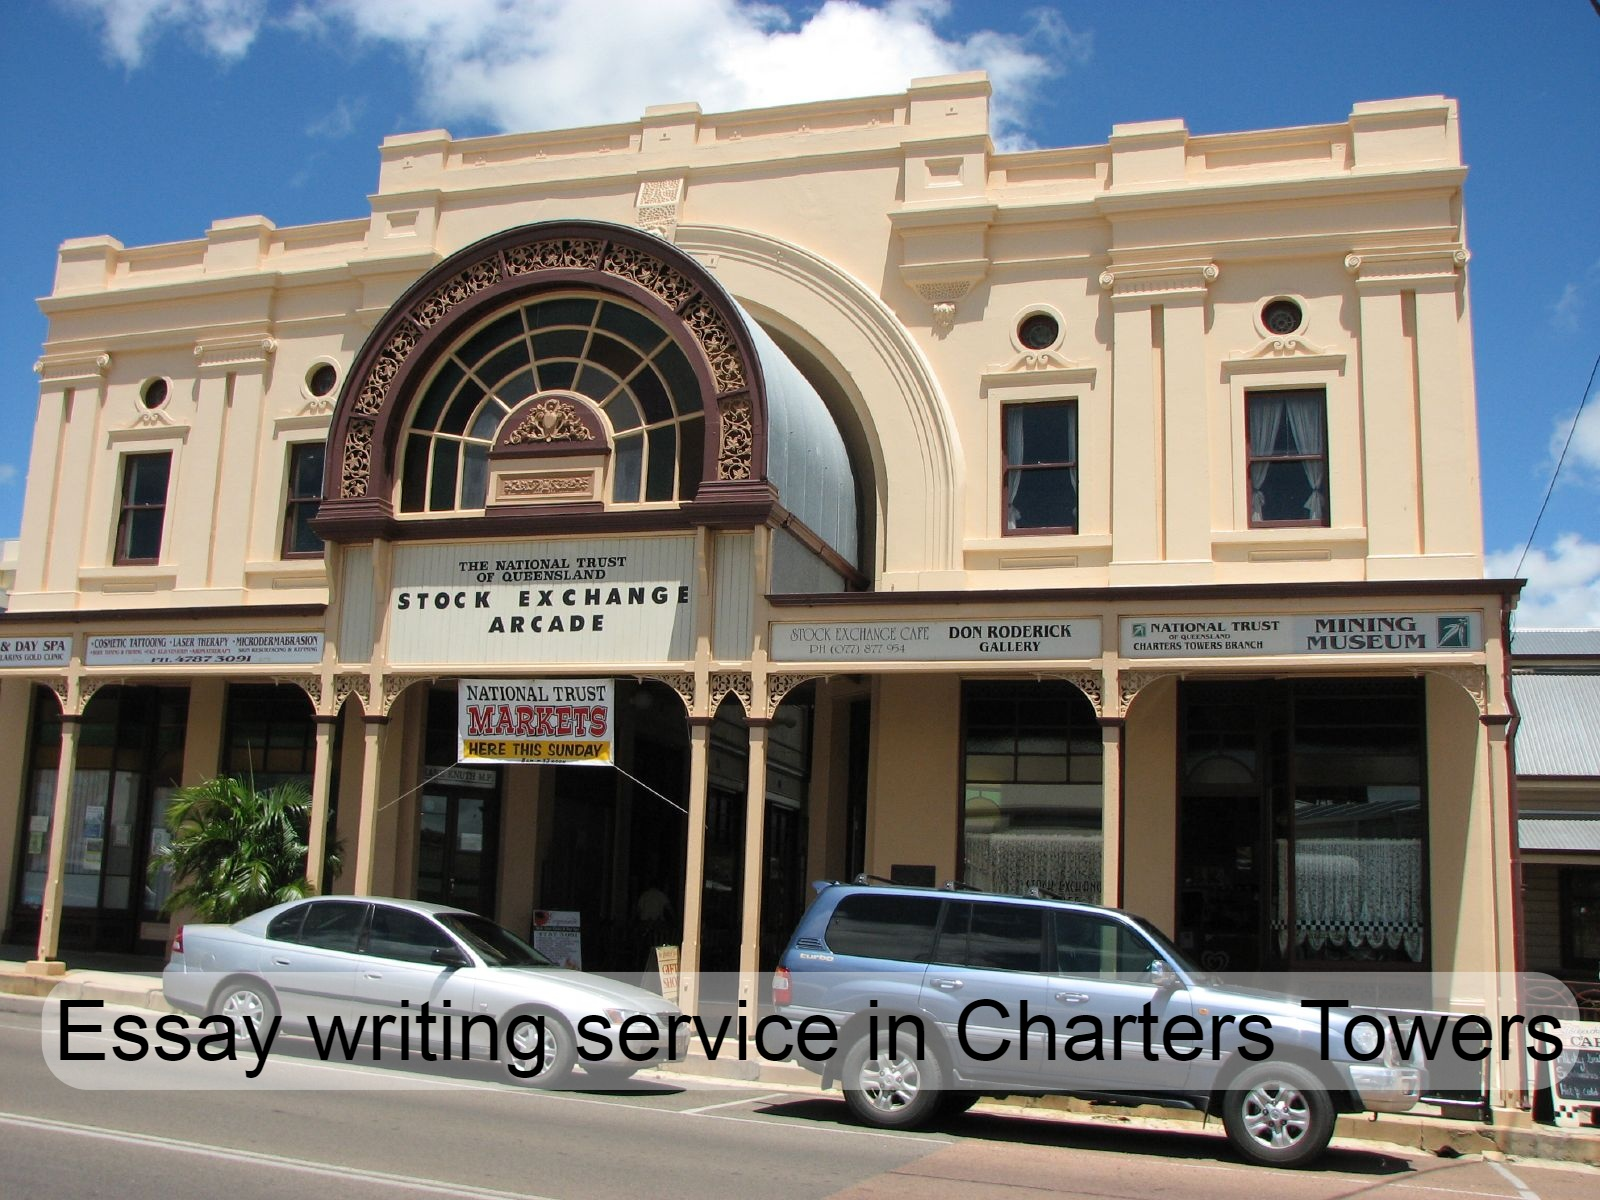 Essay writing service in Charters Towers